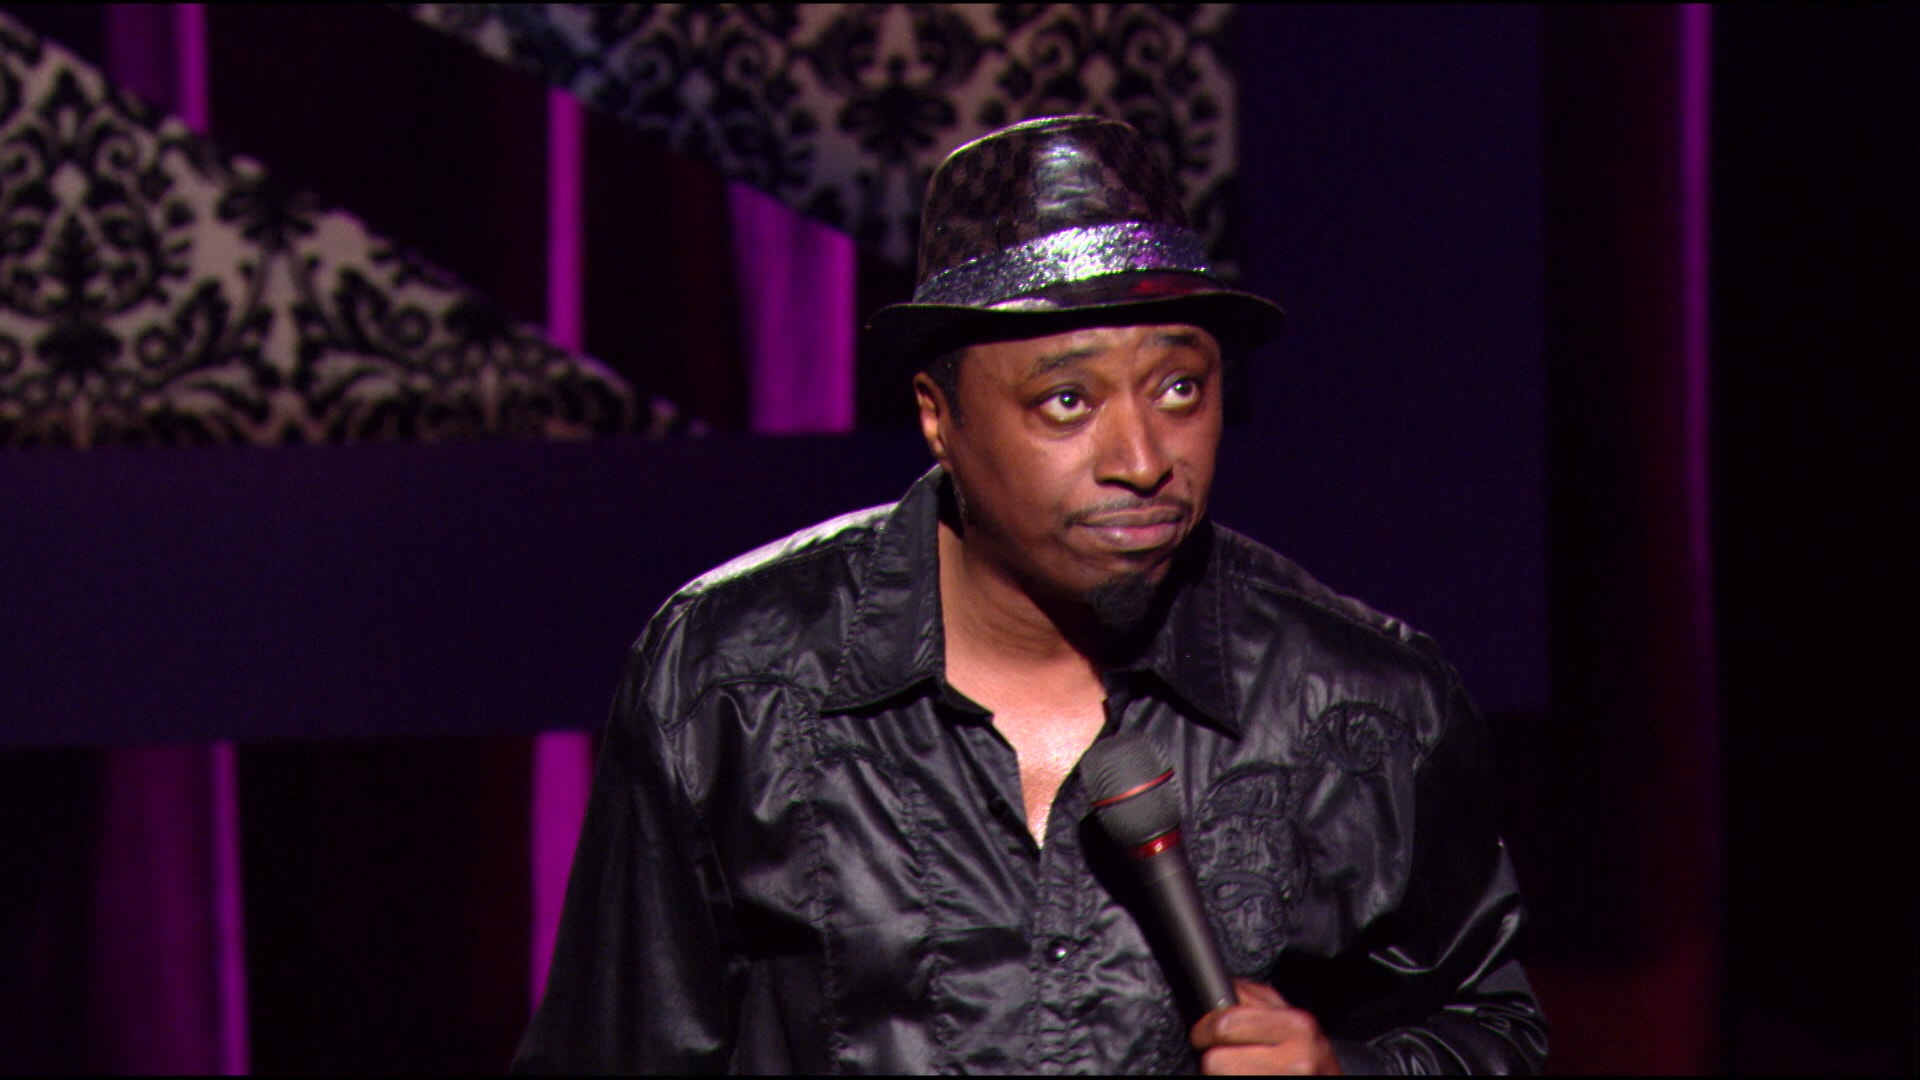 Eddie Griffin HQ wallpapers